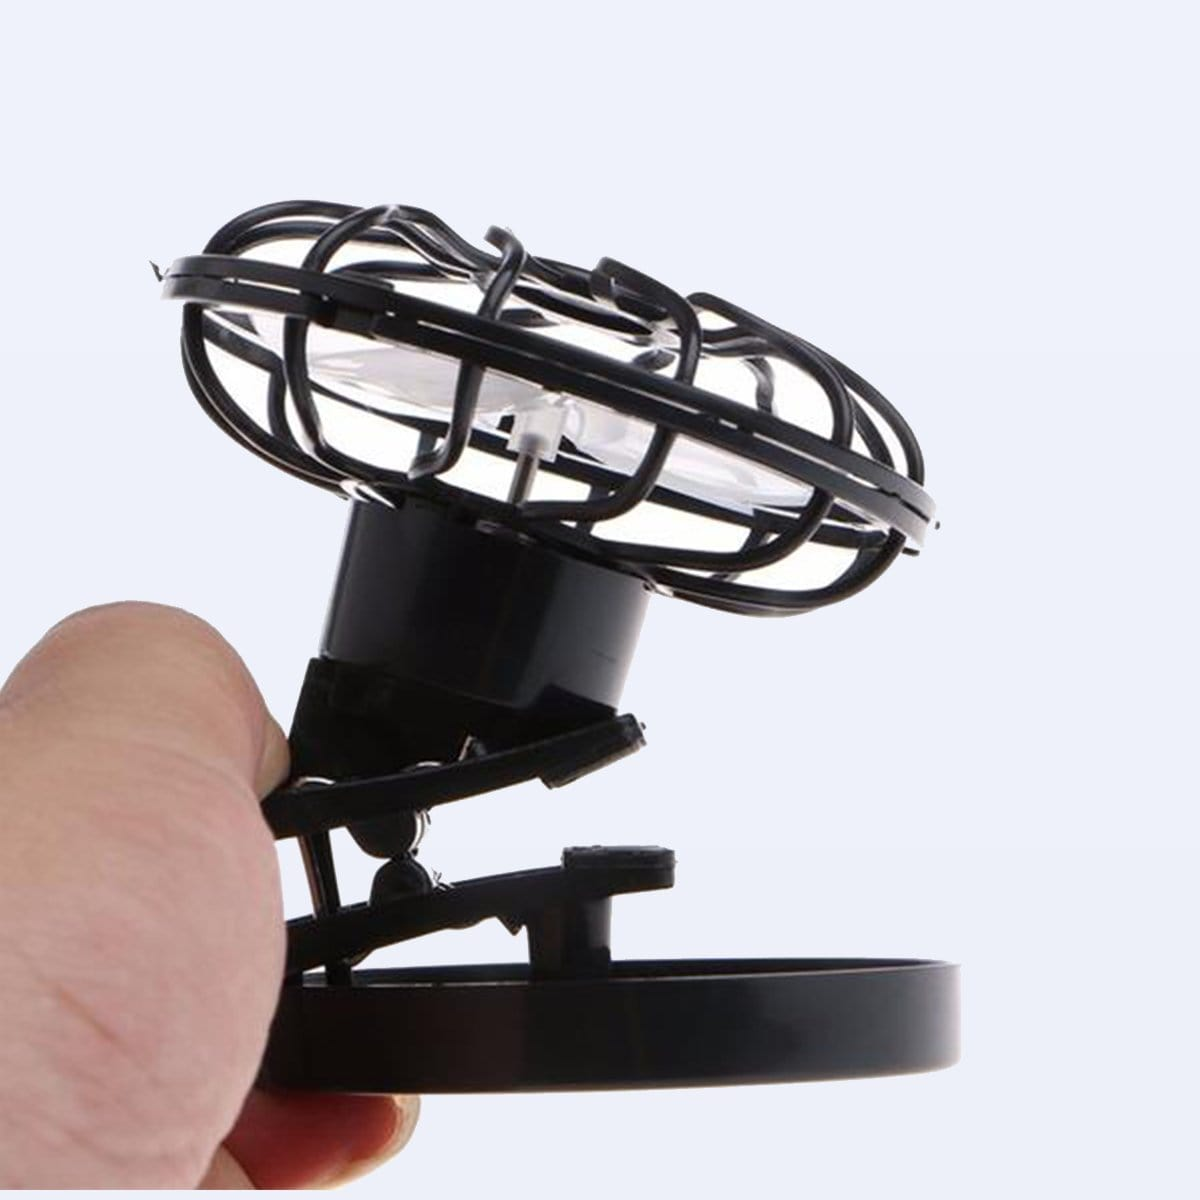 Solar-Powered Portable Clip-on Fan